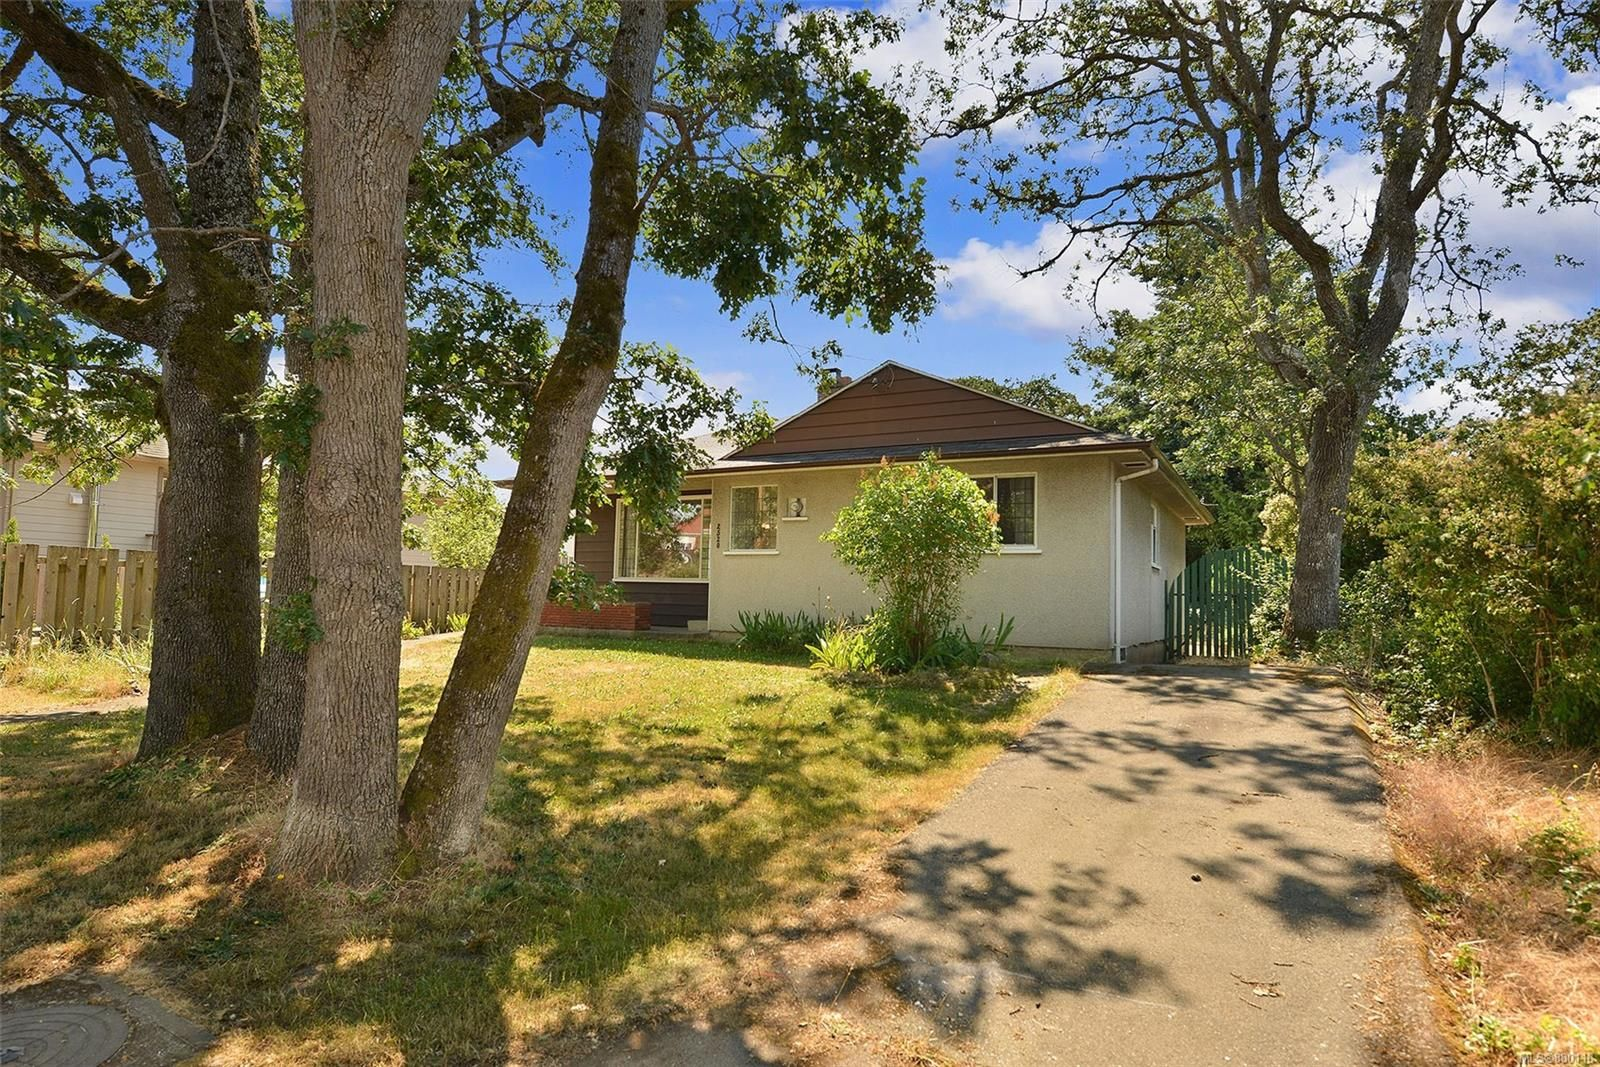 Main Photo: 2520 Forbes St in : Vi Oaklands House for sale (Victoria)  : MLS®# 880118